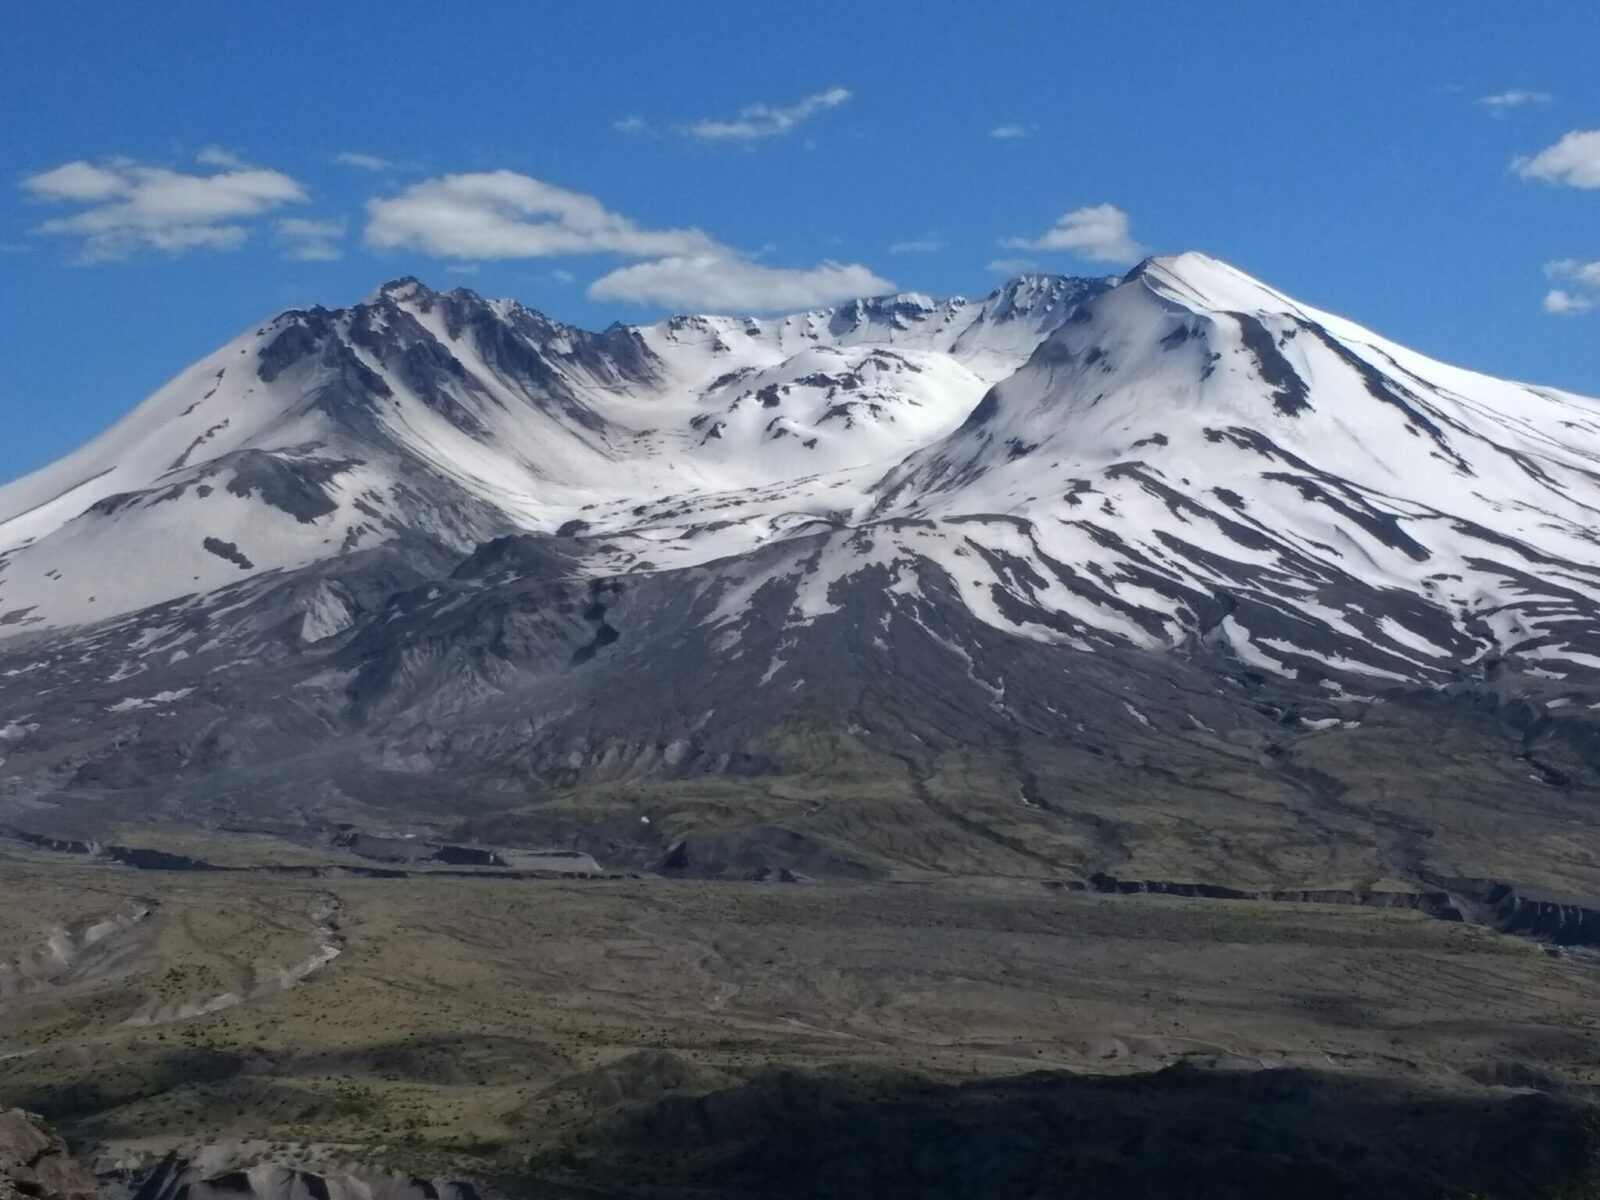 The crater of Mt St Helens with early summer snow still around the summit. In the foreground is the gray and brown landscape of volcanic destruction